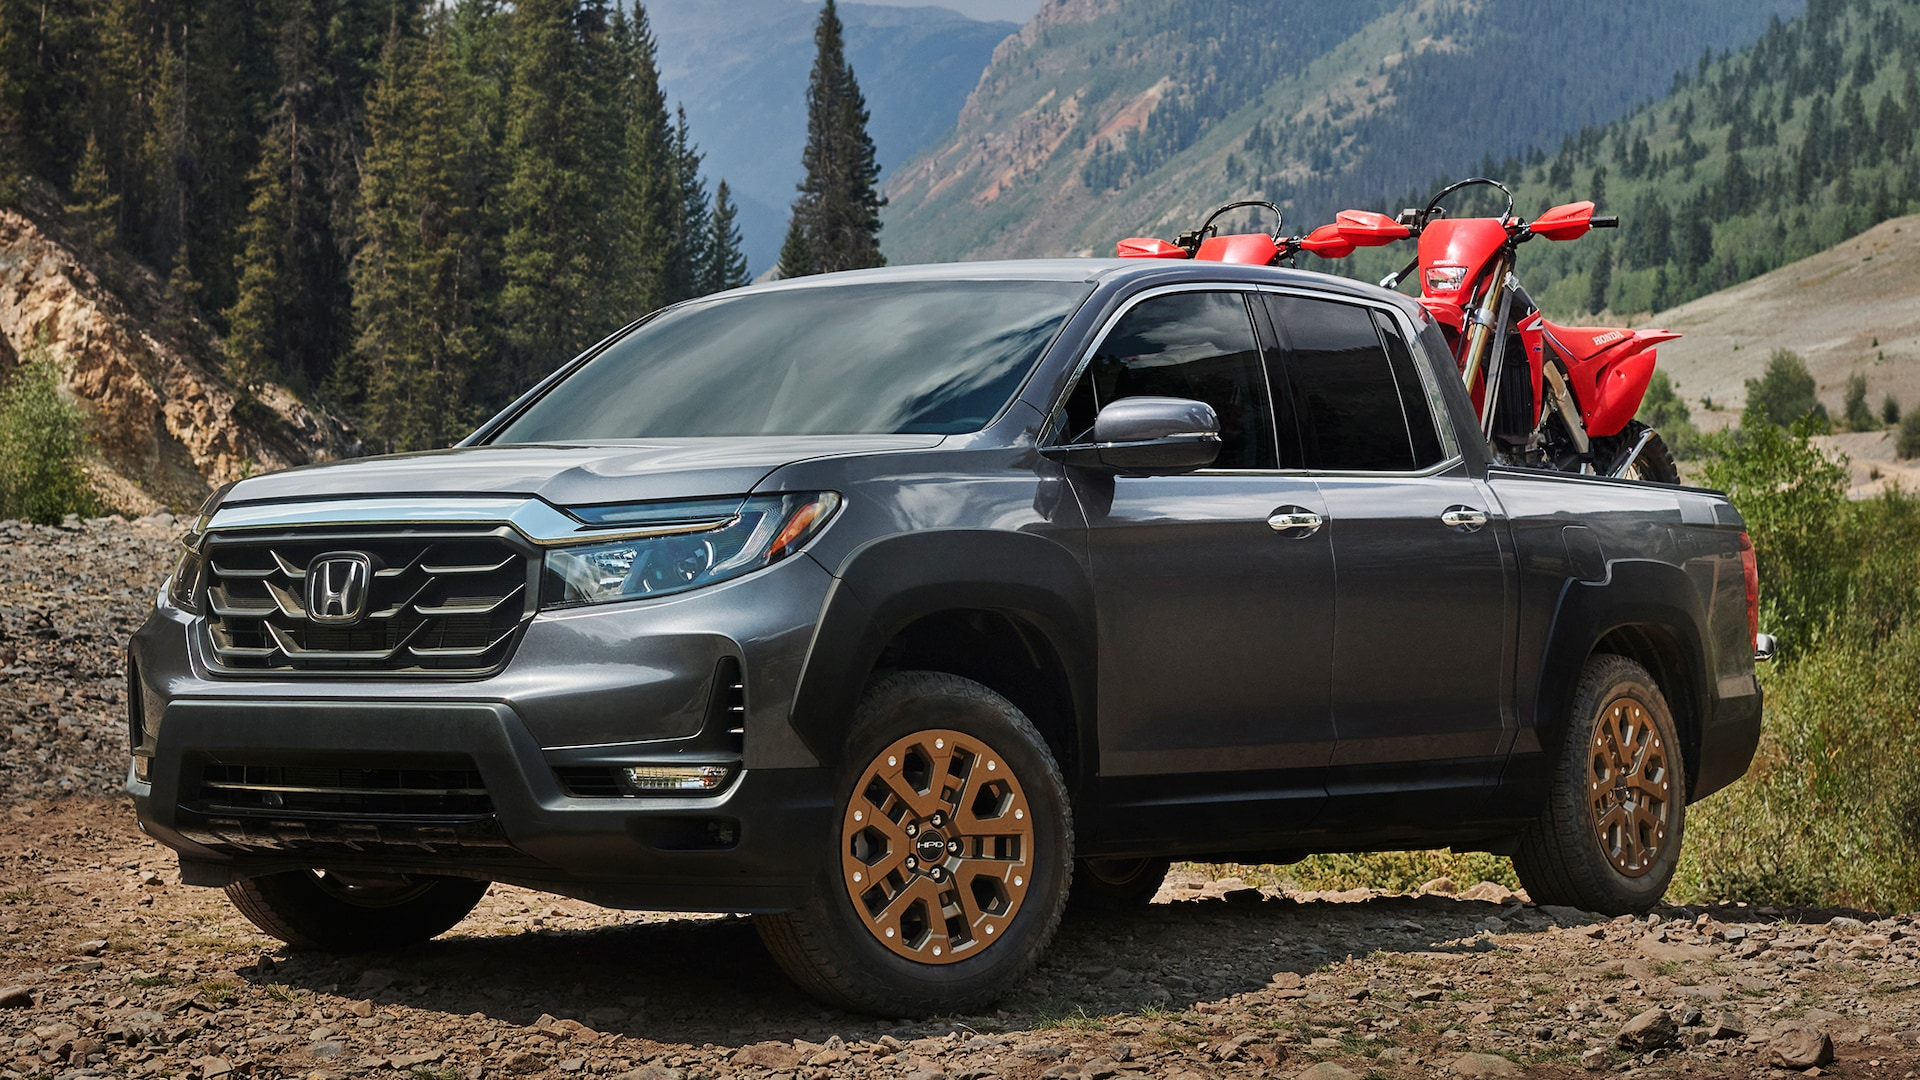 The honda ridgeline offers 33.9 cubic feet of cargo space in its truck bed with an additional 7.3. 2021 Honda Ridgeline Buyer S Guide Reviews Specs Comparisons